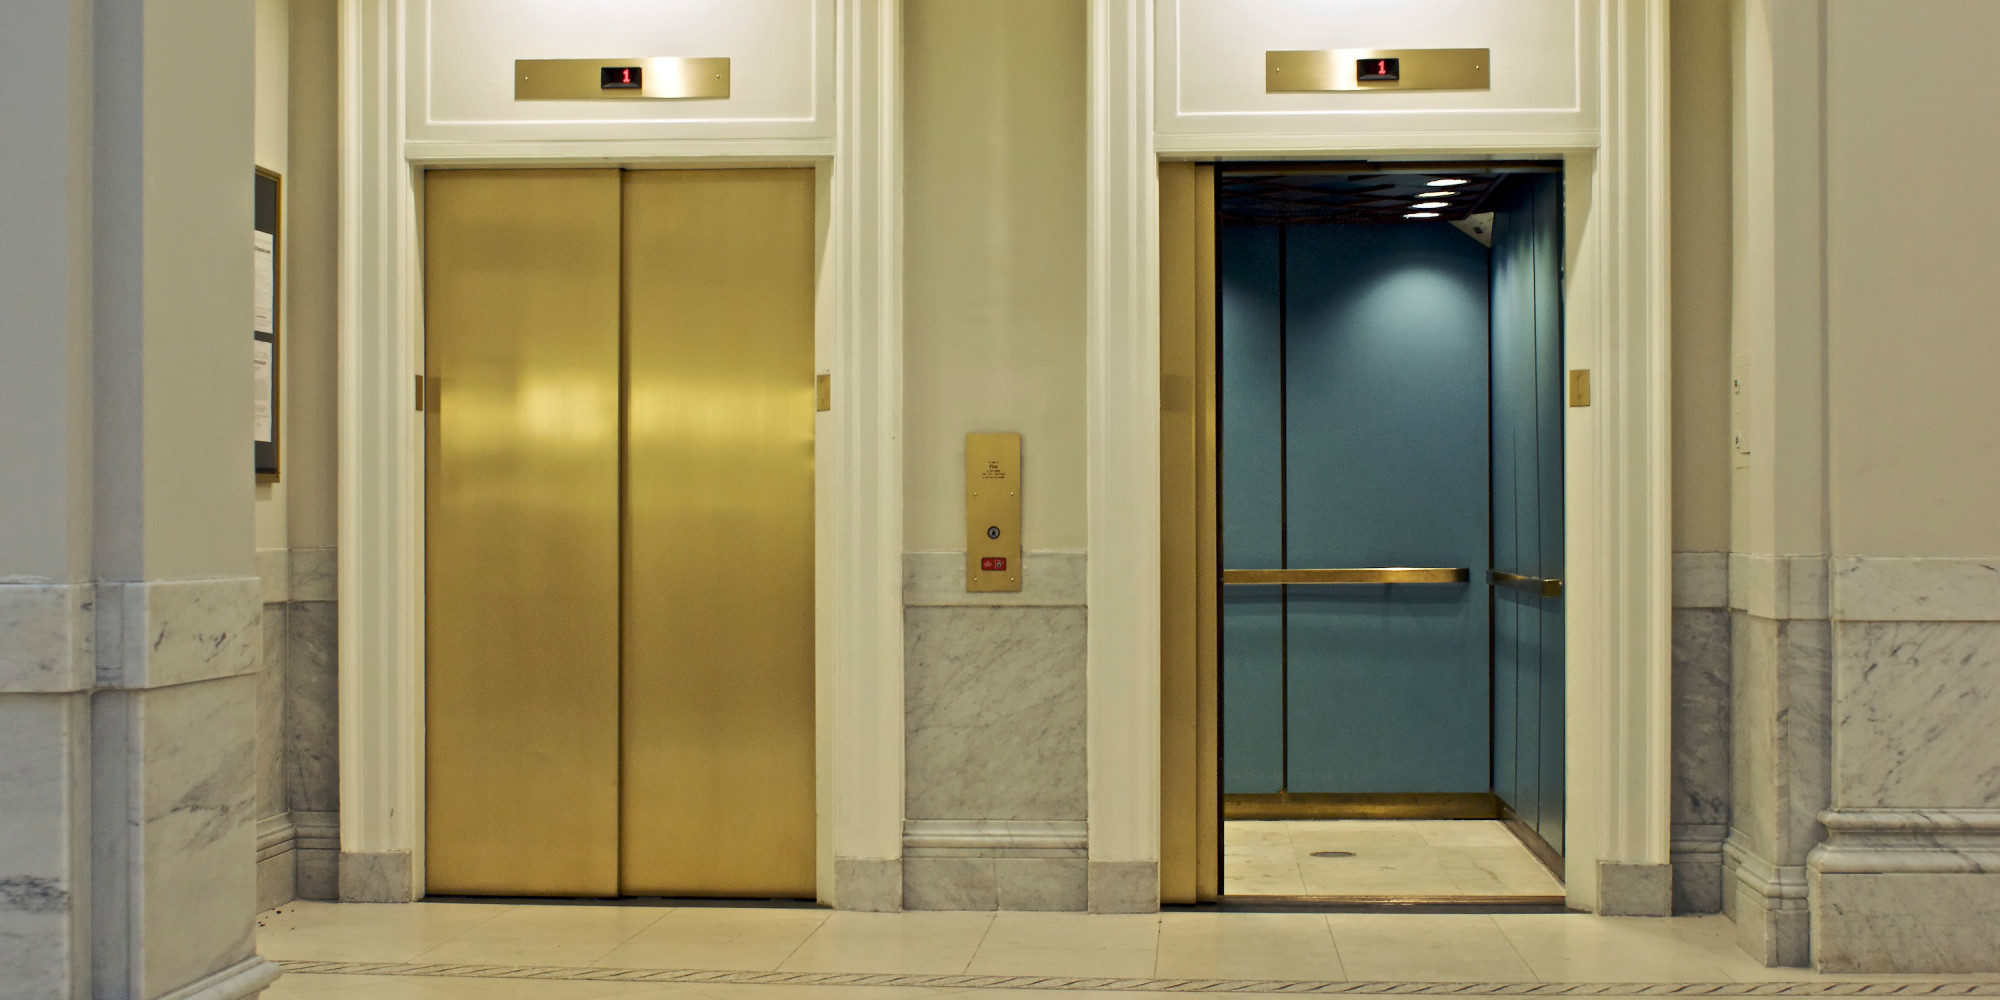 Attention Developers Amp Buyers New Lift Safety Rules And